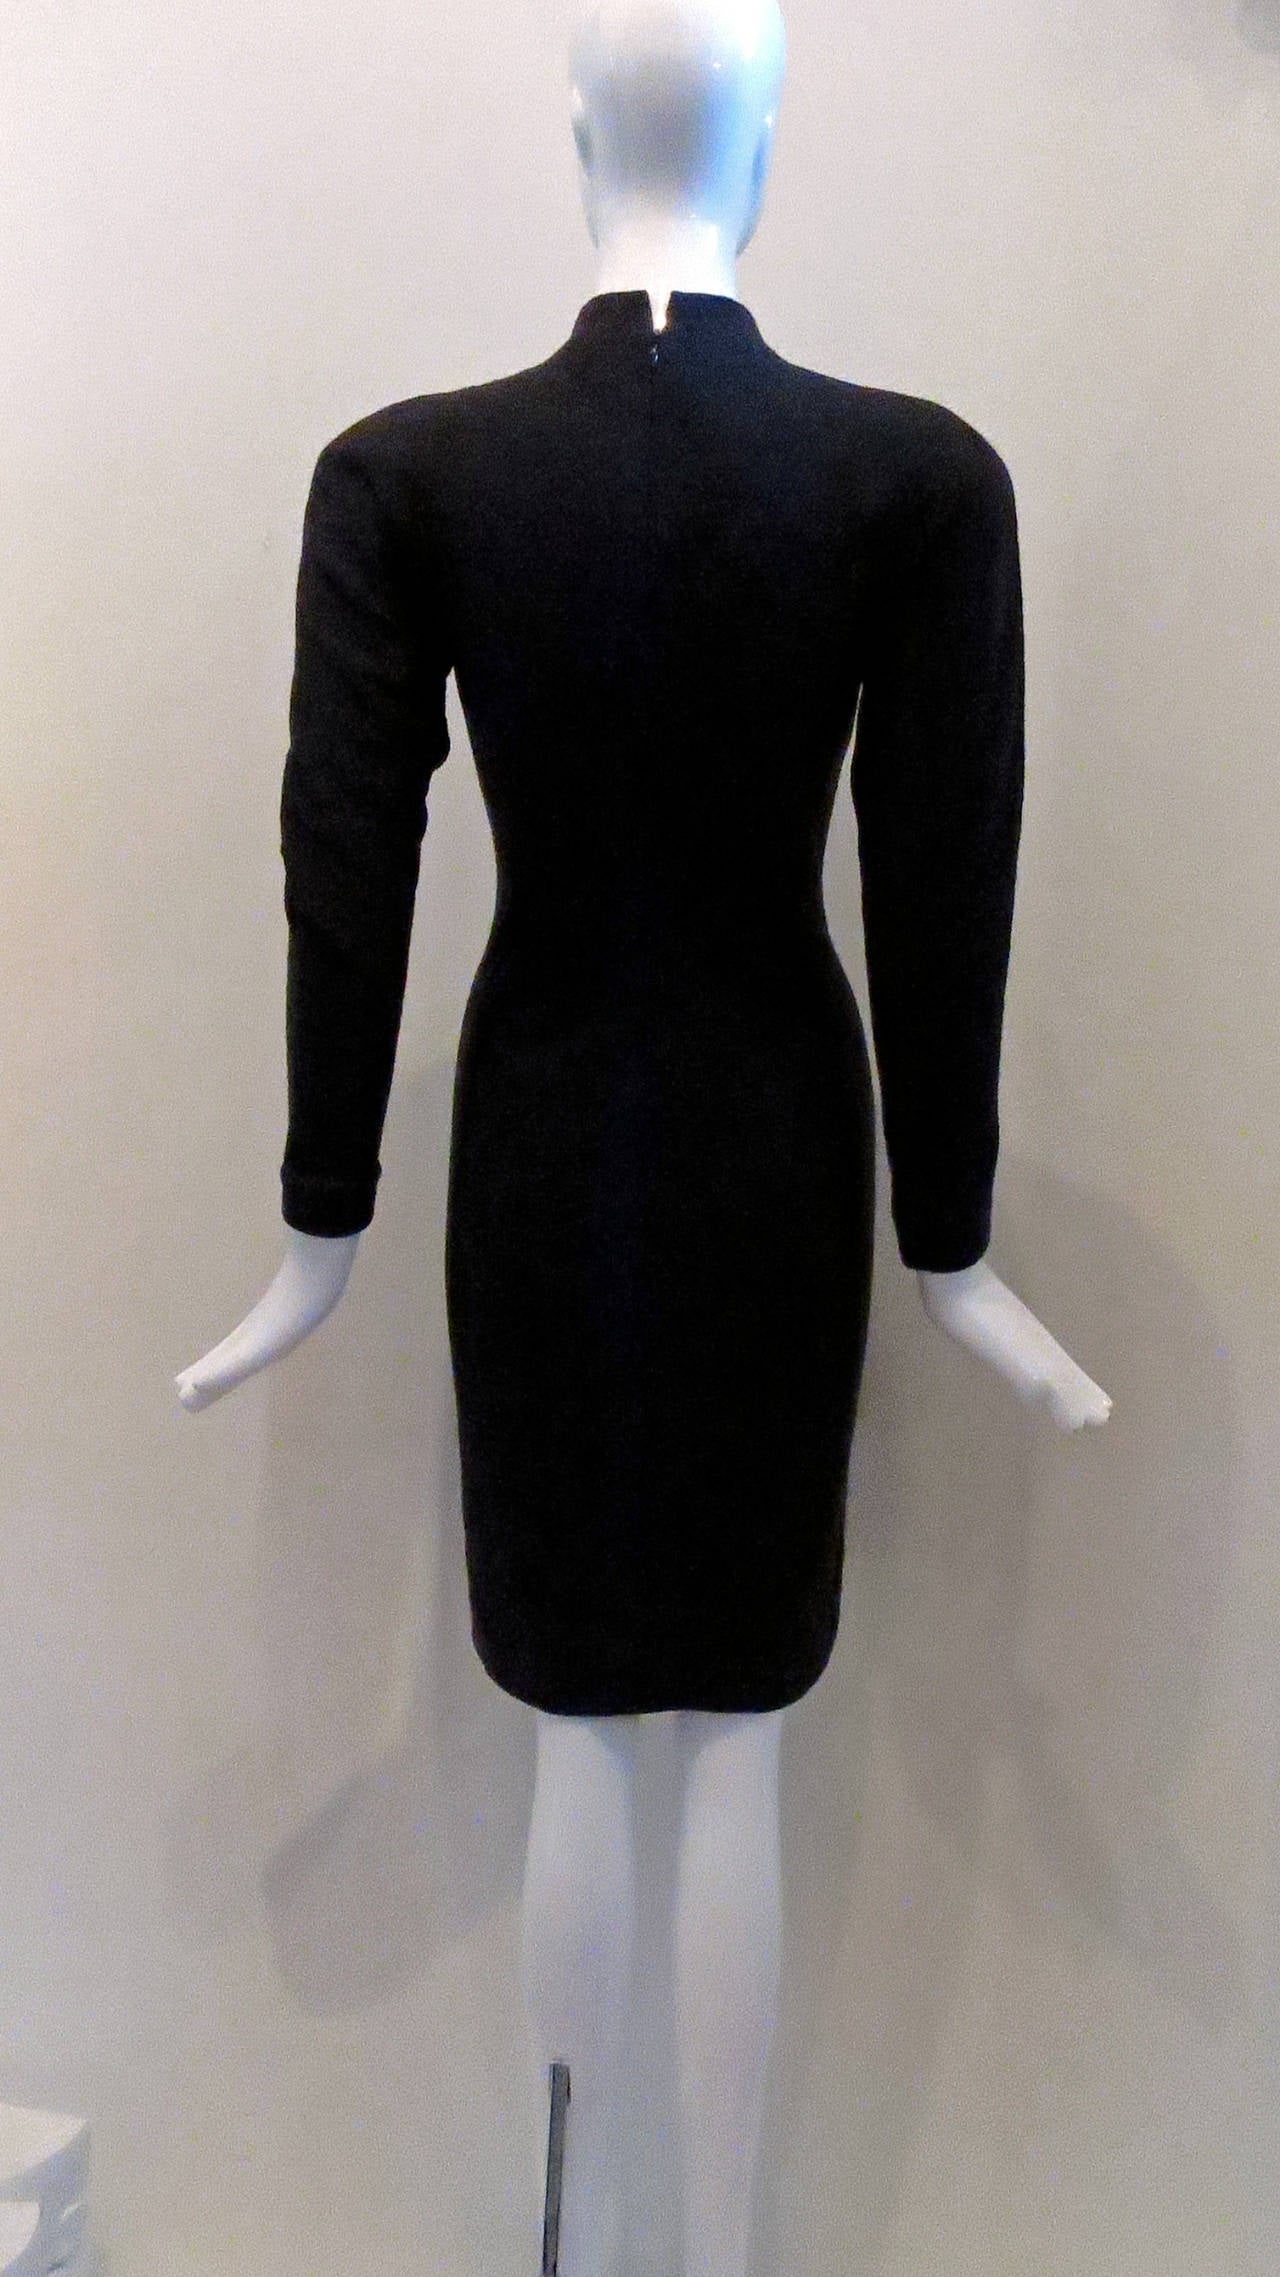 HALSTON Grey Wool Knit Mock Turtleneck Dress In Excellent Condition For Sale In Brooklyn, NY